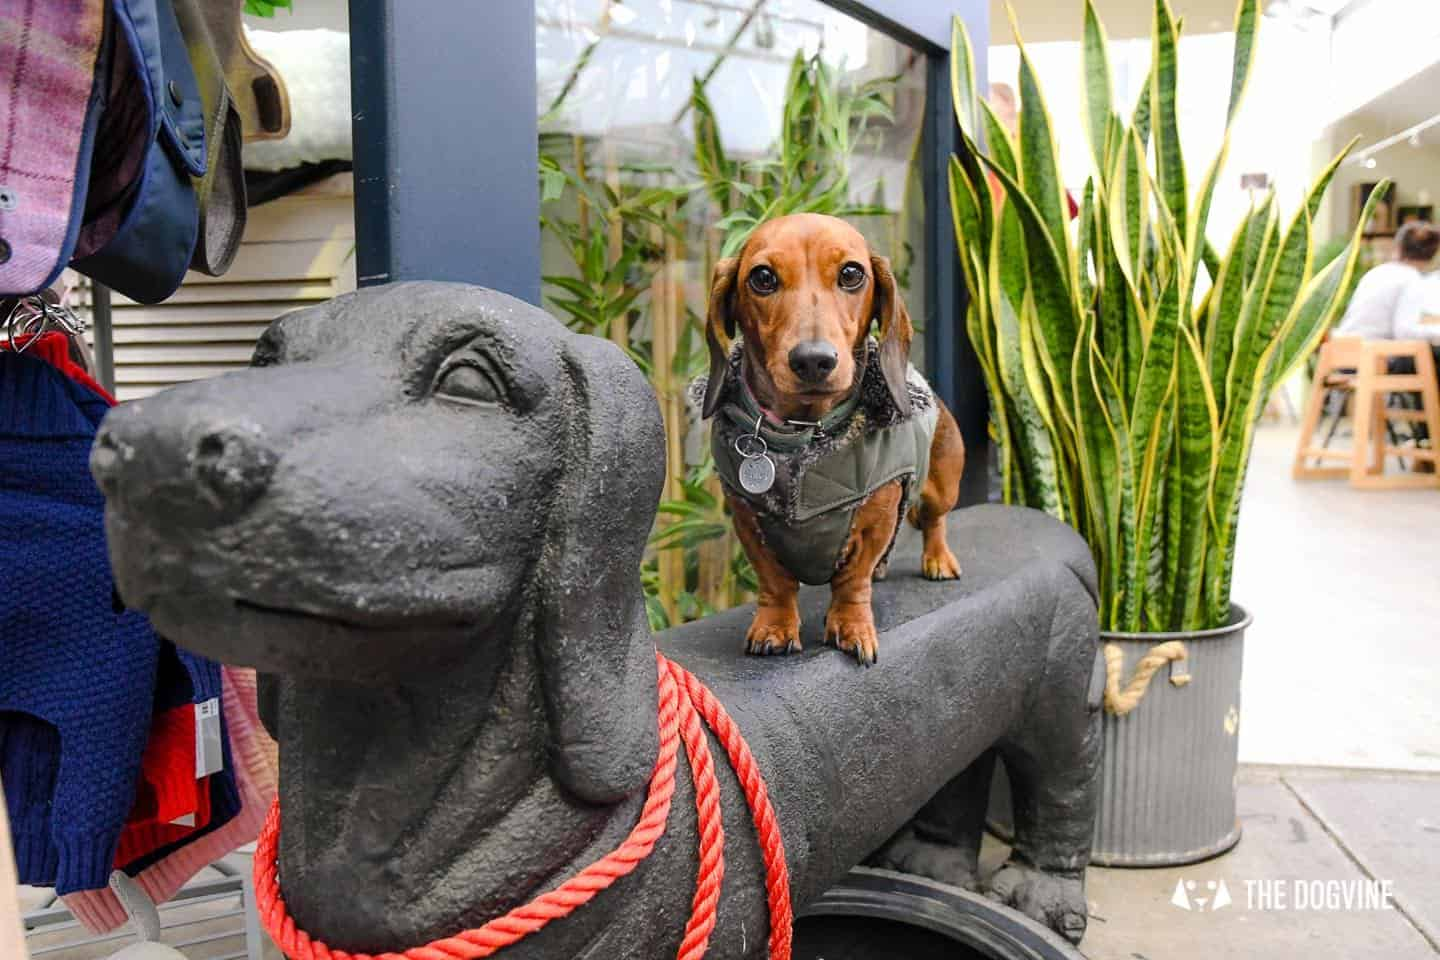 Dog-friendly Fulham - My Dog-friendly London - The Palace Gardener 6